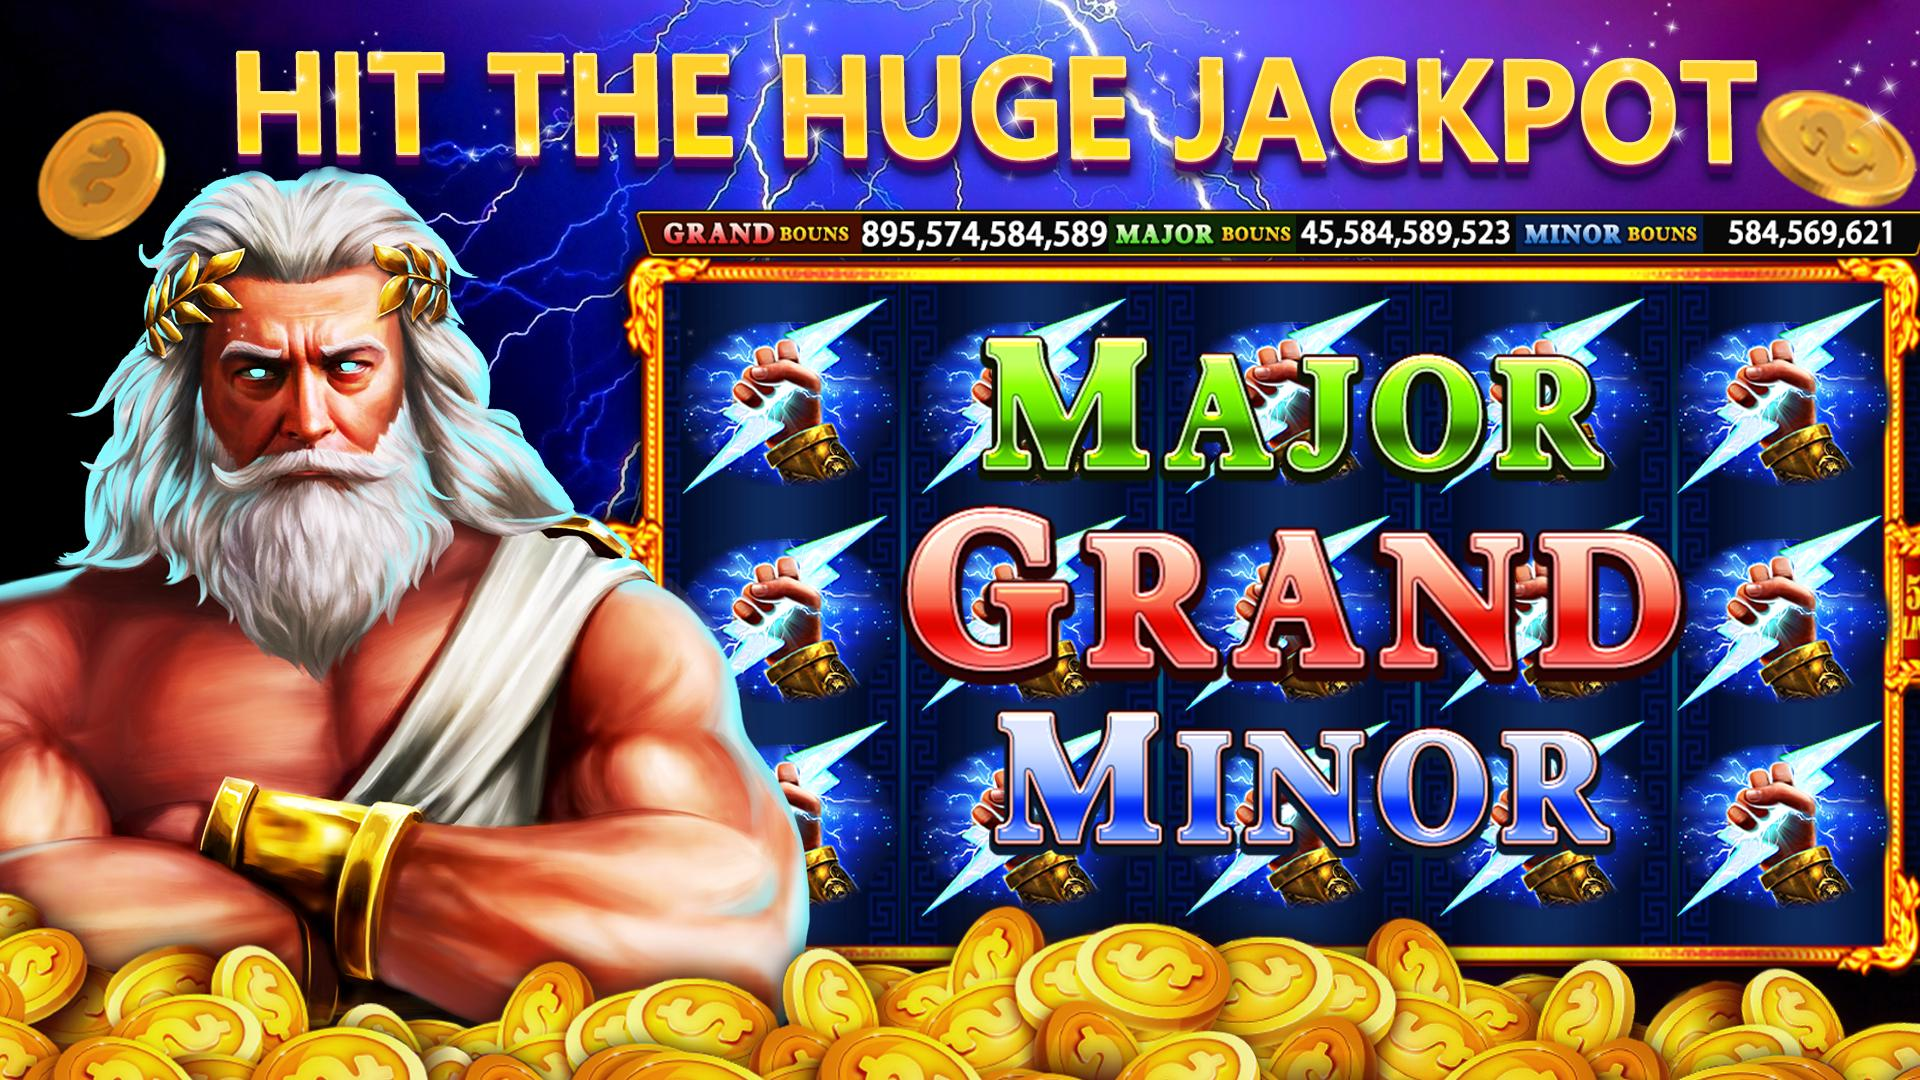 Grand Jackpot Slots for Android - APK Download